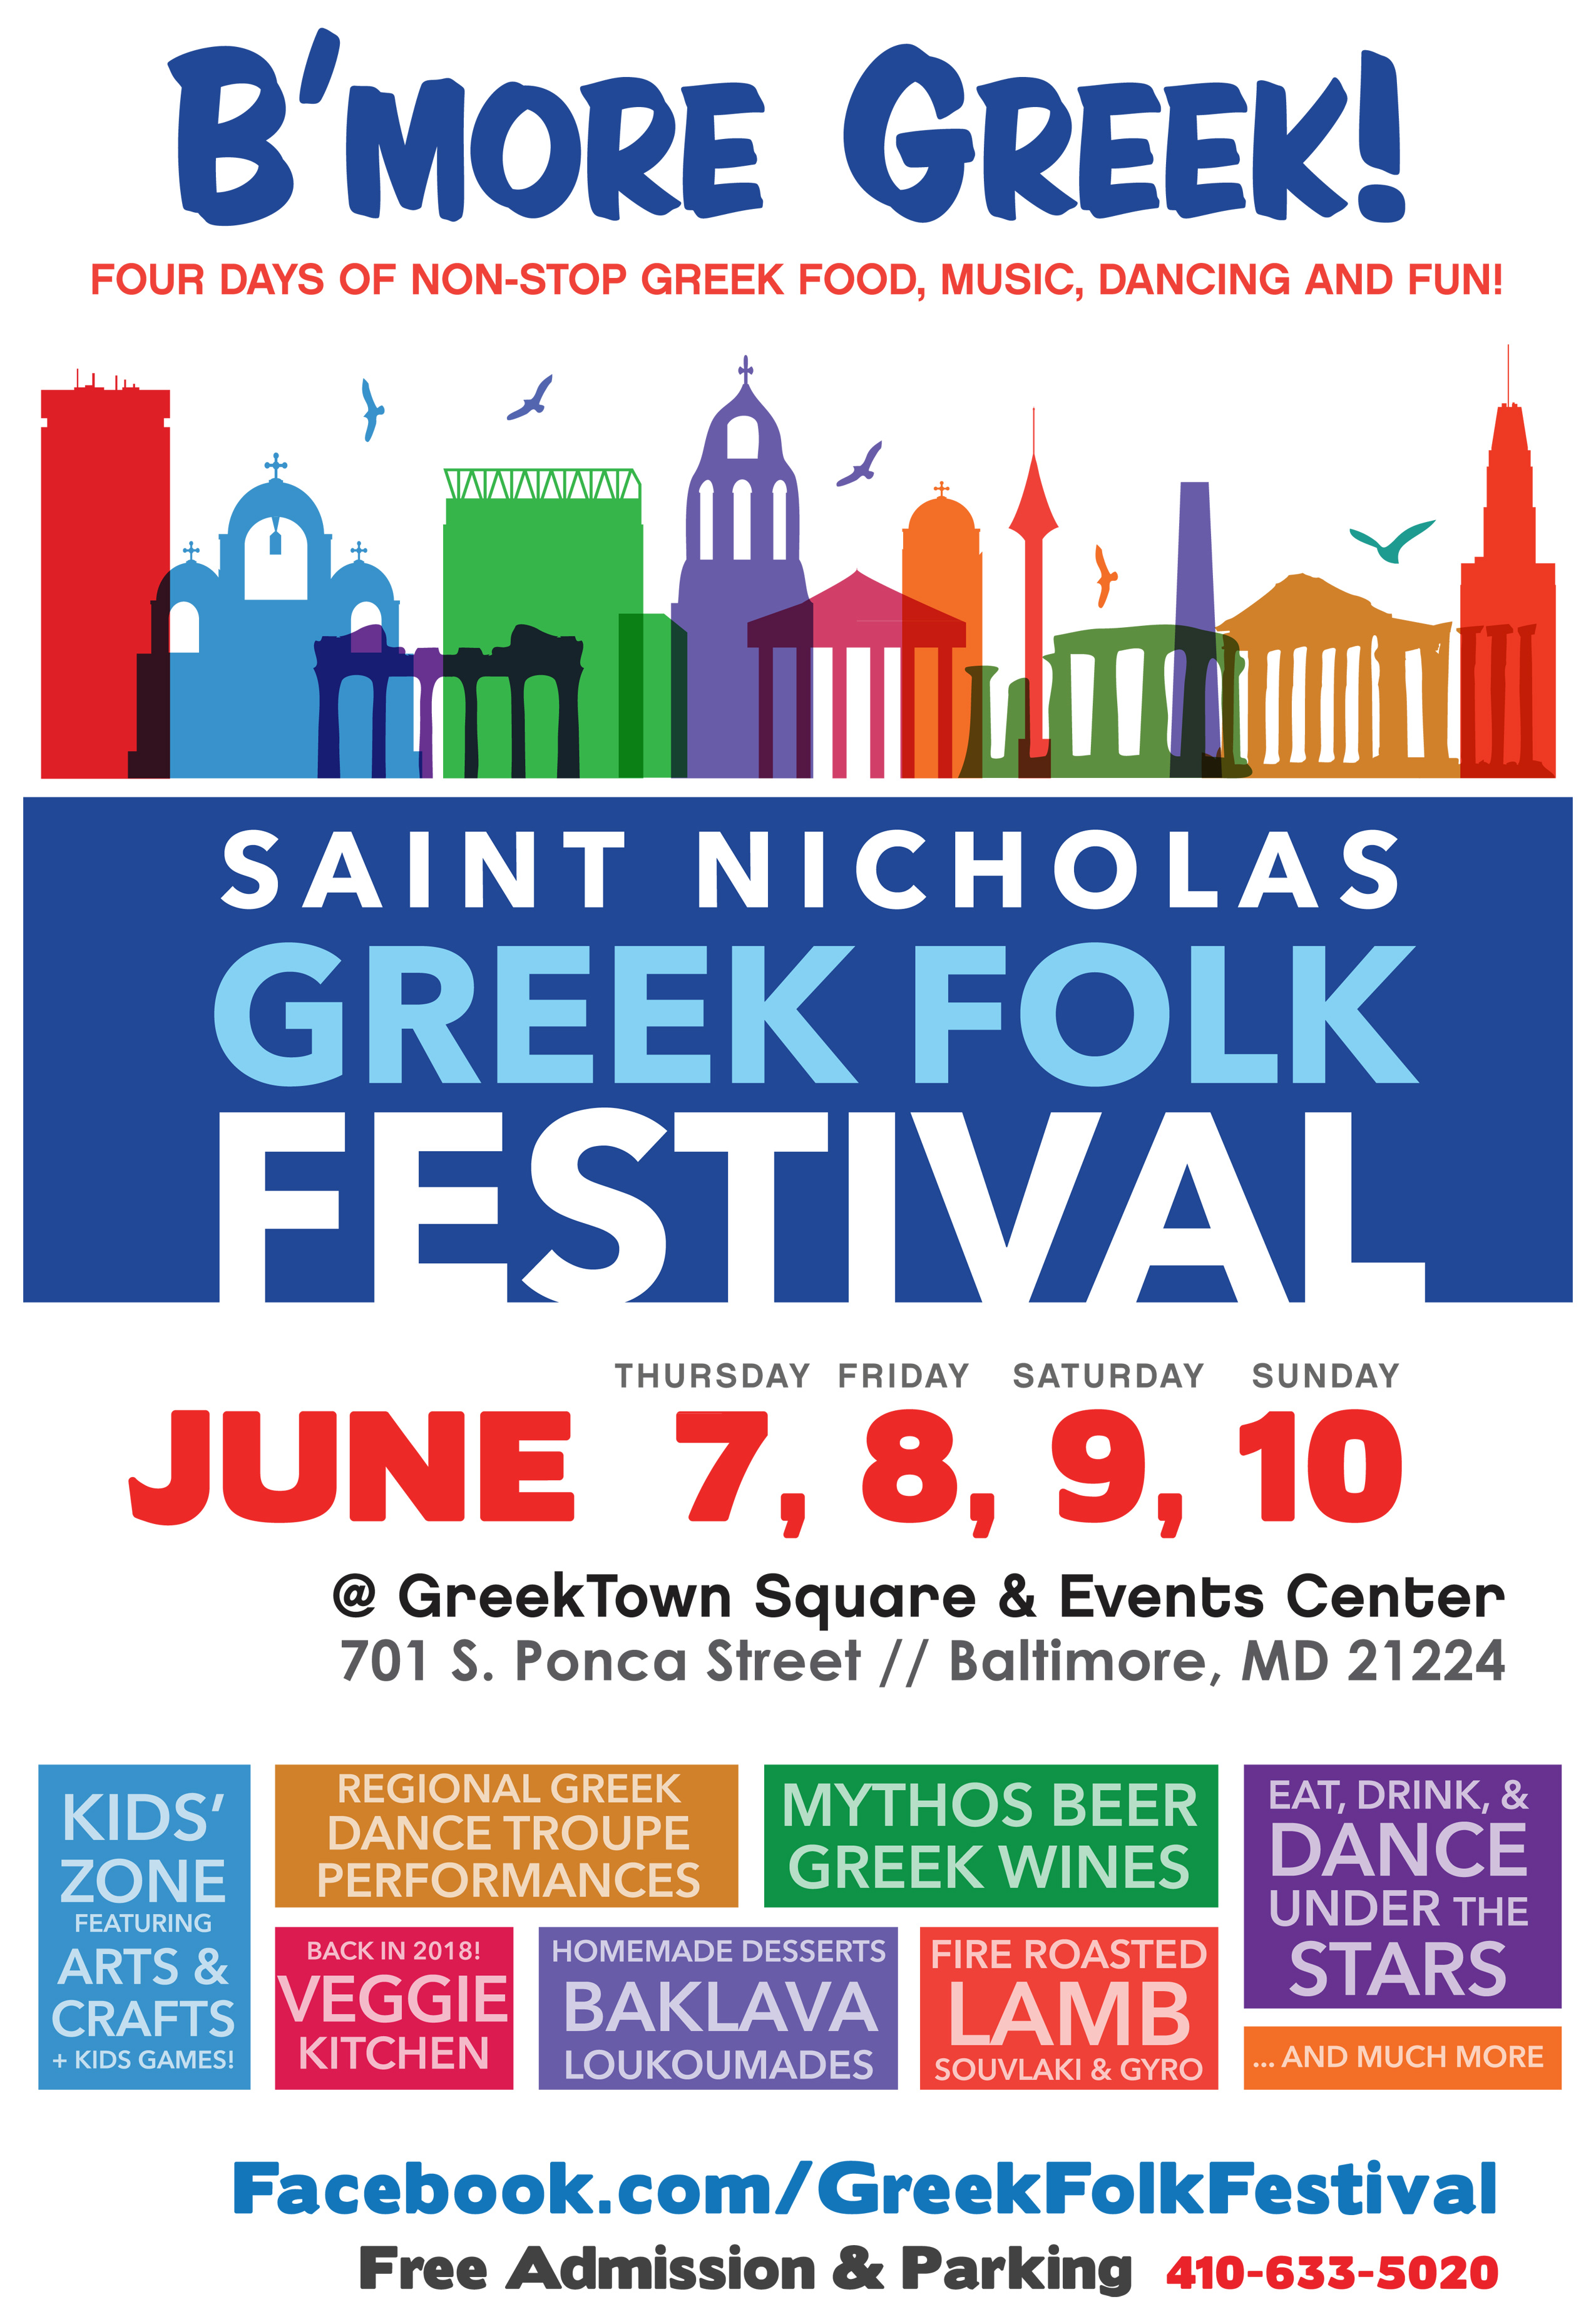 Four days and nights of Authentic Greek food, dancing, and entertainment for the entire family.